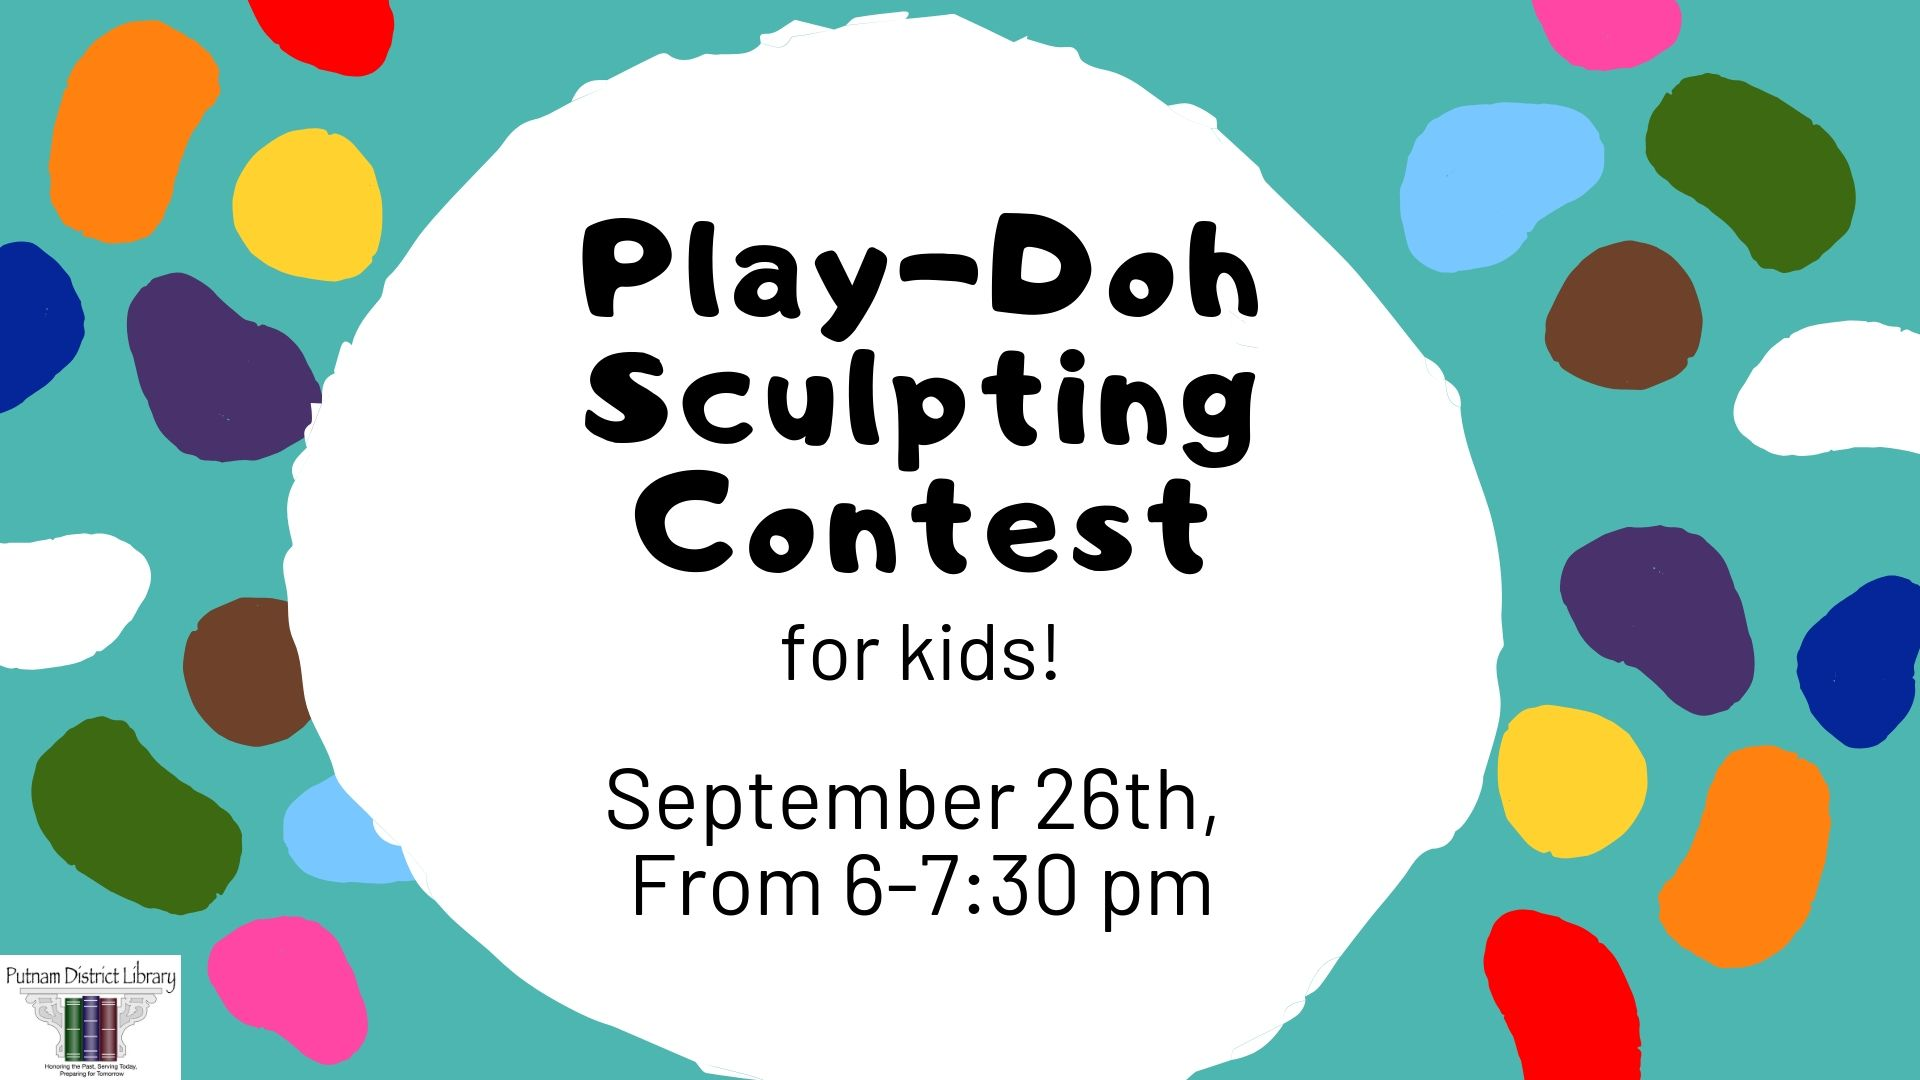 Play-Doh Sculting Contest for Kids!